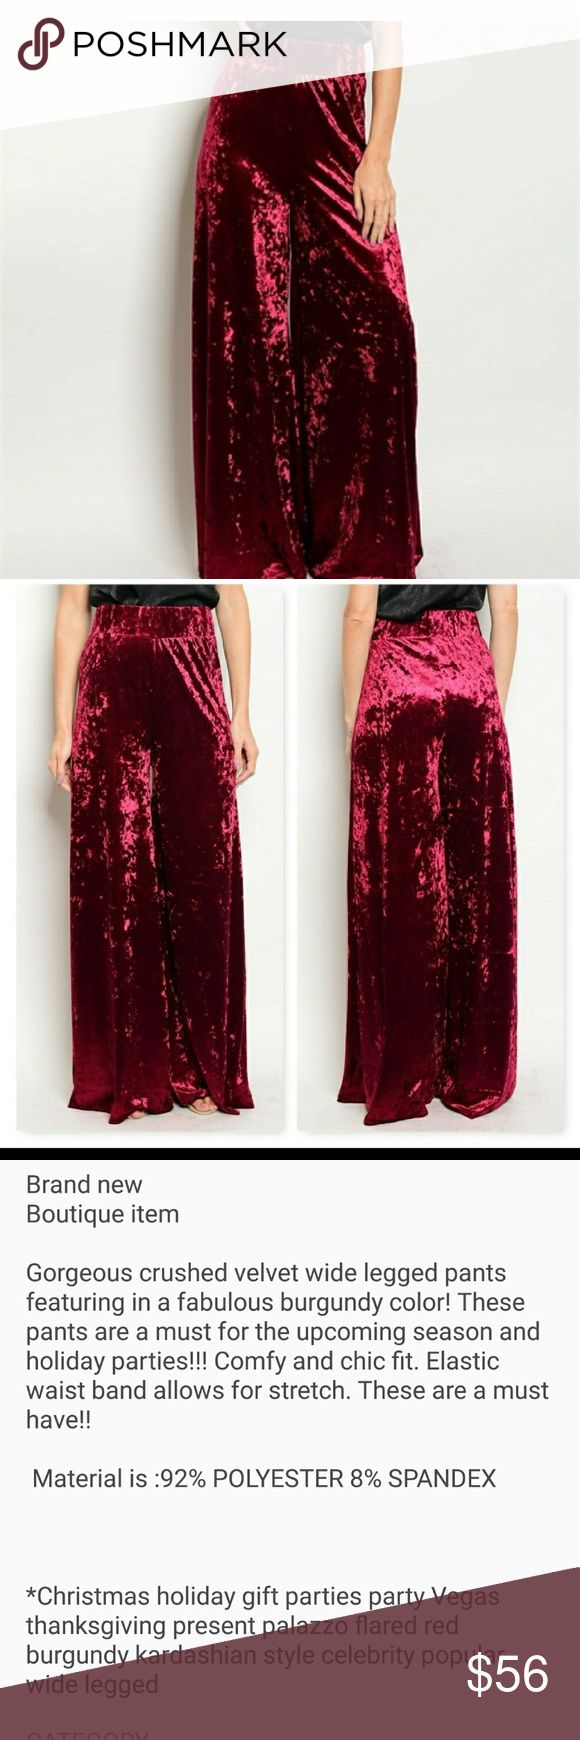 LAST CHANCE ❤ SEXY VELVET PANTS!! Brand new  Boutique Item  Never worn got wrong size. Perfect for this holiday season💋 modamecouture Pants Wide Leg